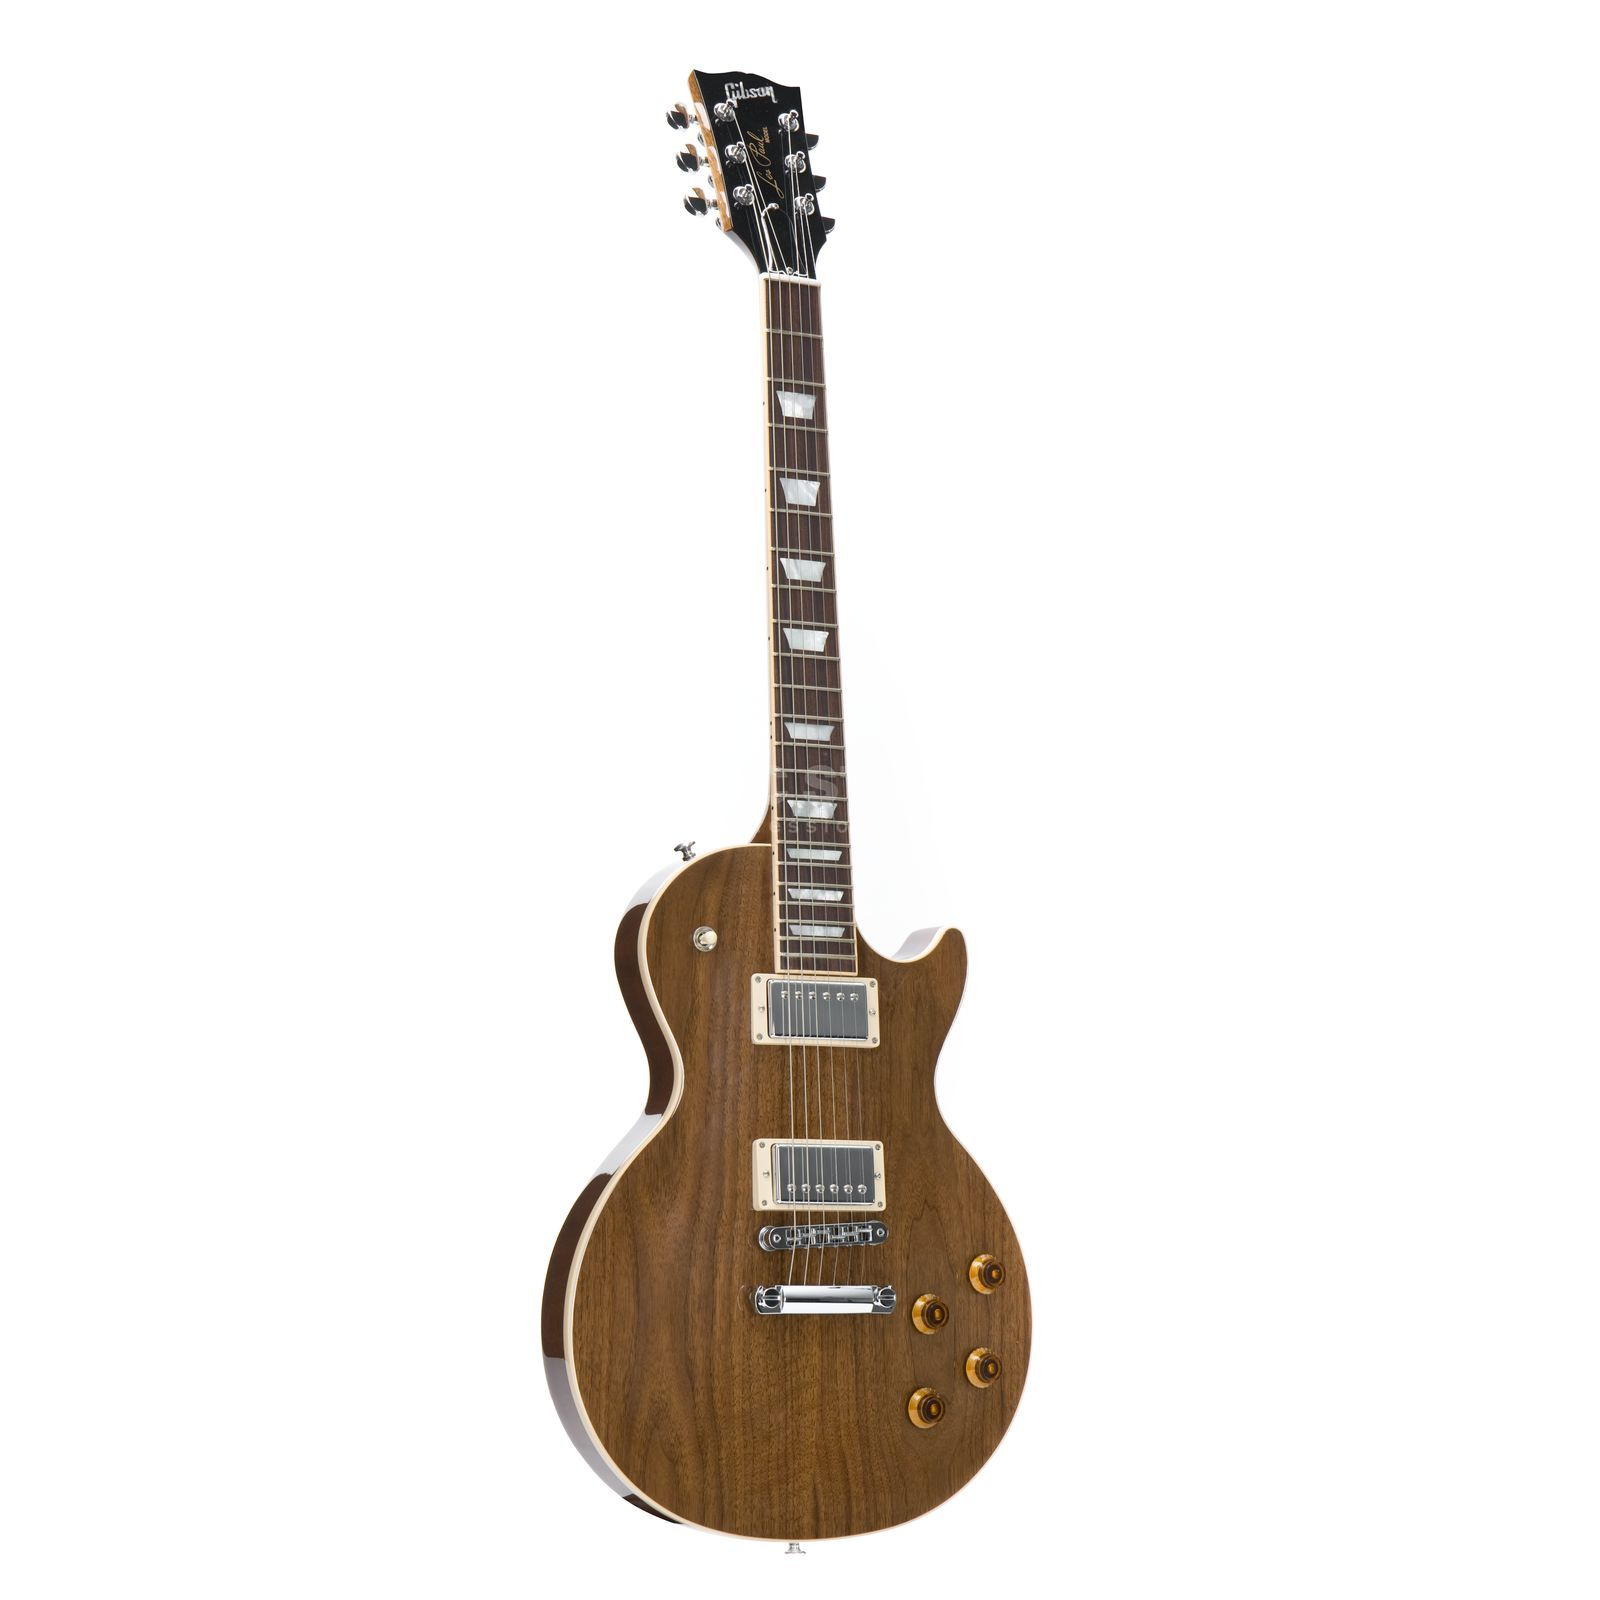 Gibson Les Paul Standard Figured Walnut Limited Изображение товара